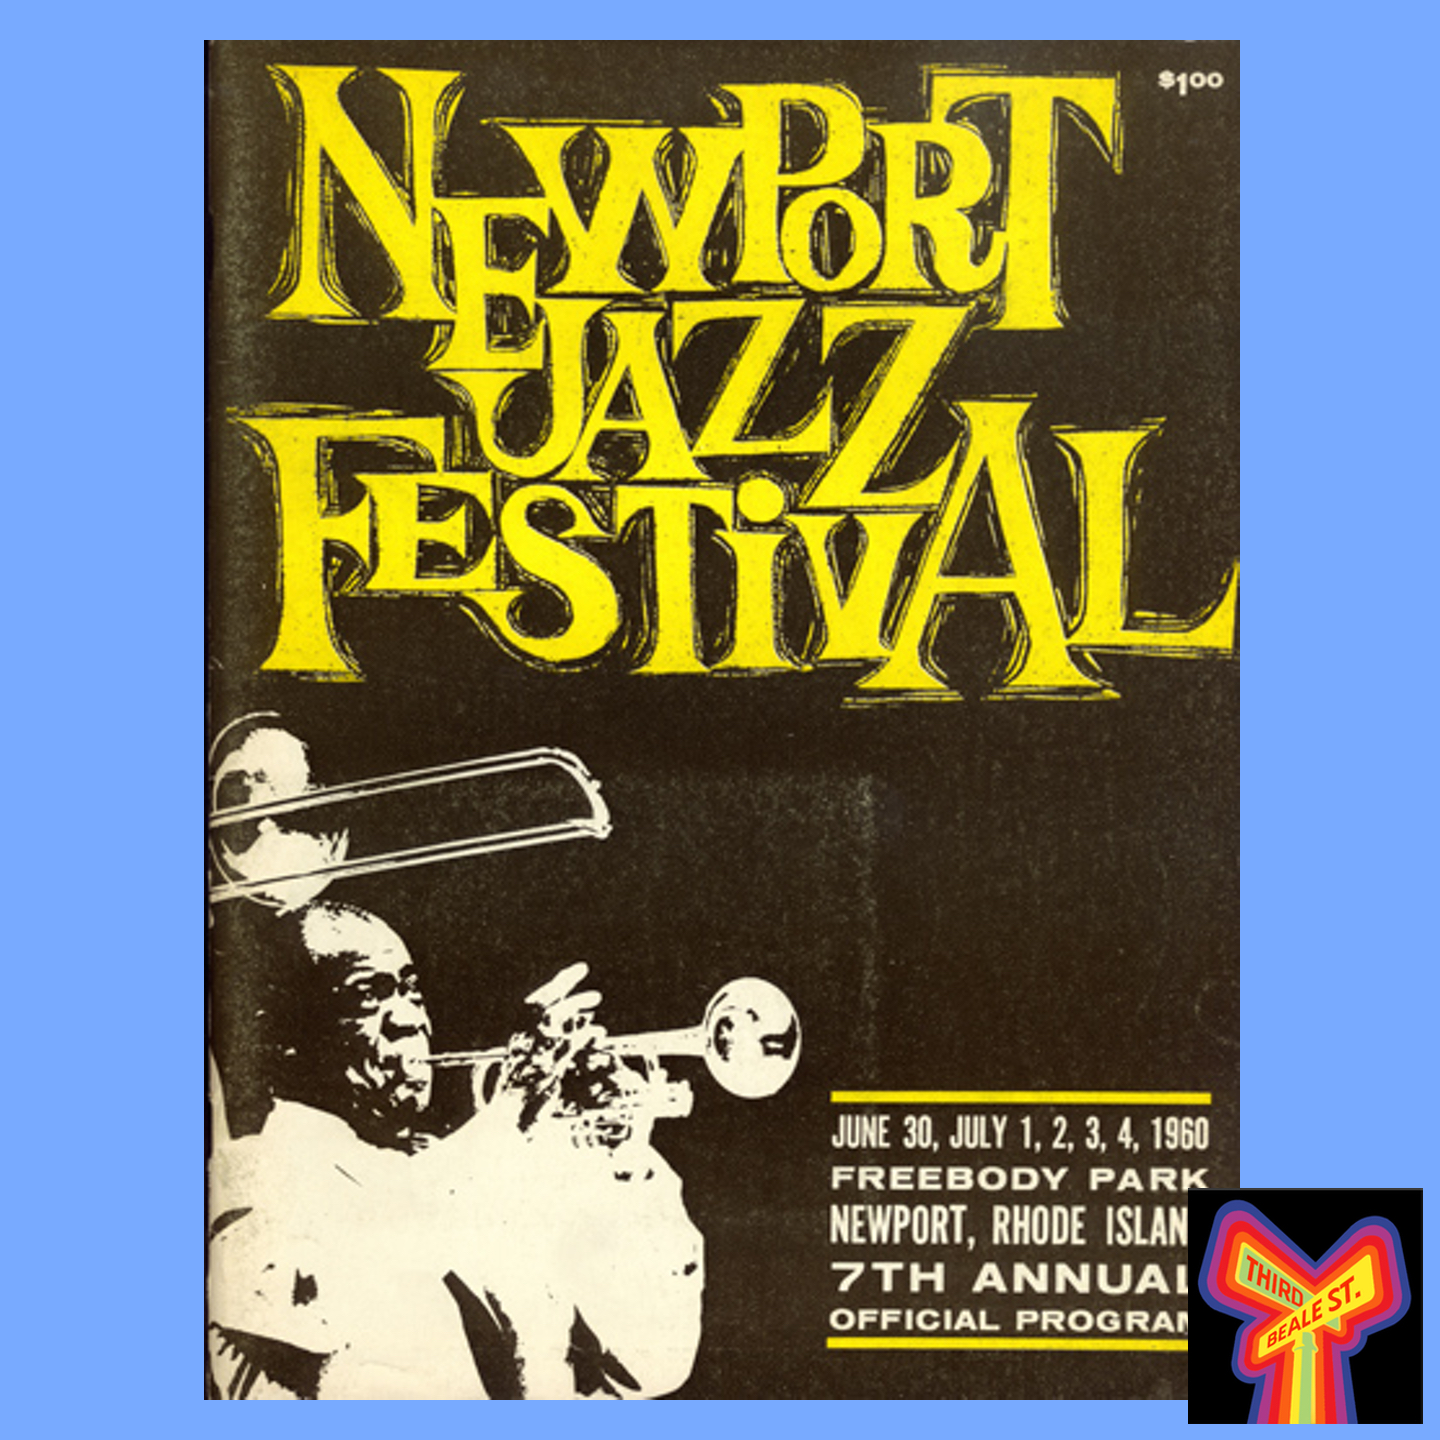 Caption: Program for the 1960 Newport Jazz Festival, which included performances by John Lee Hooker and Muddy Waters.